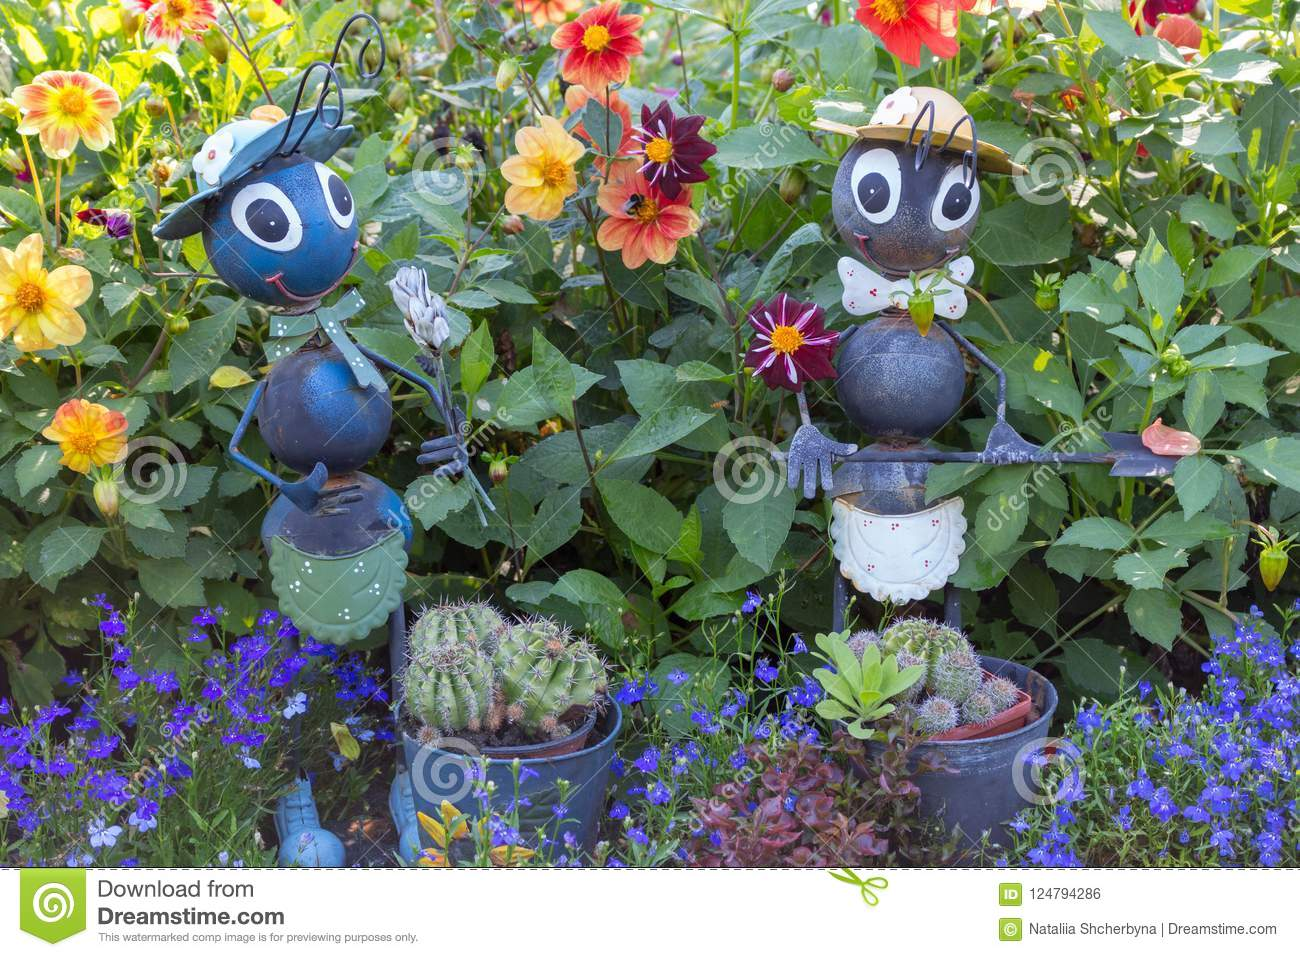 Backyard Statues funny garden figures in grass and flowers. backyard decor. ants